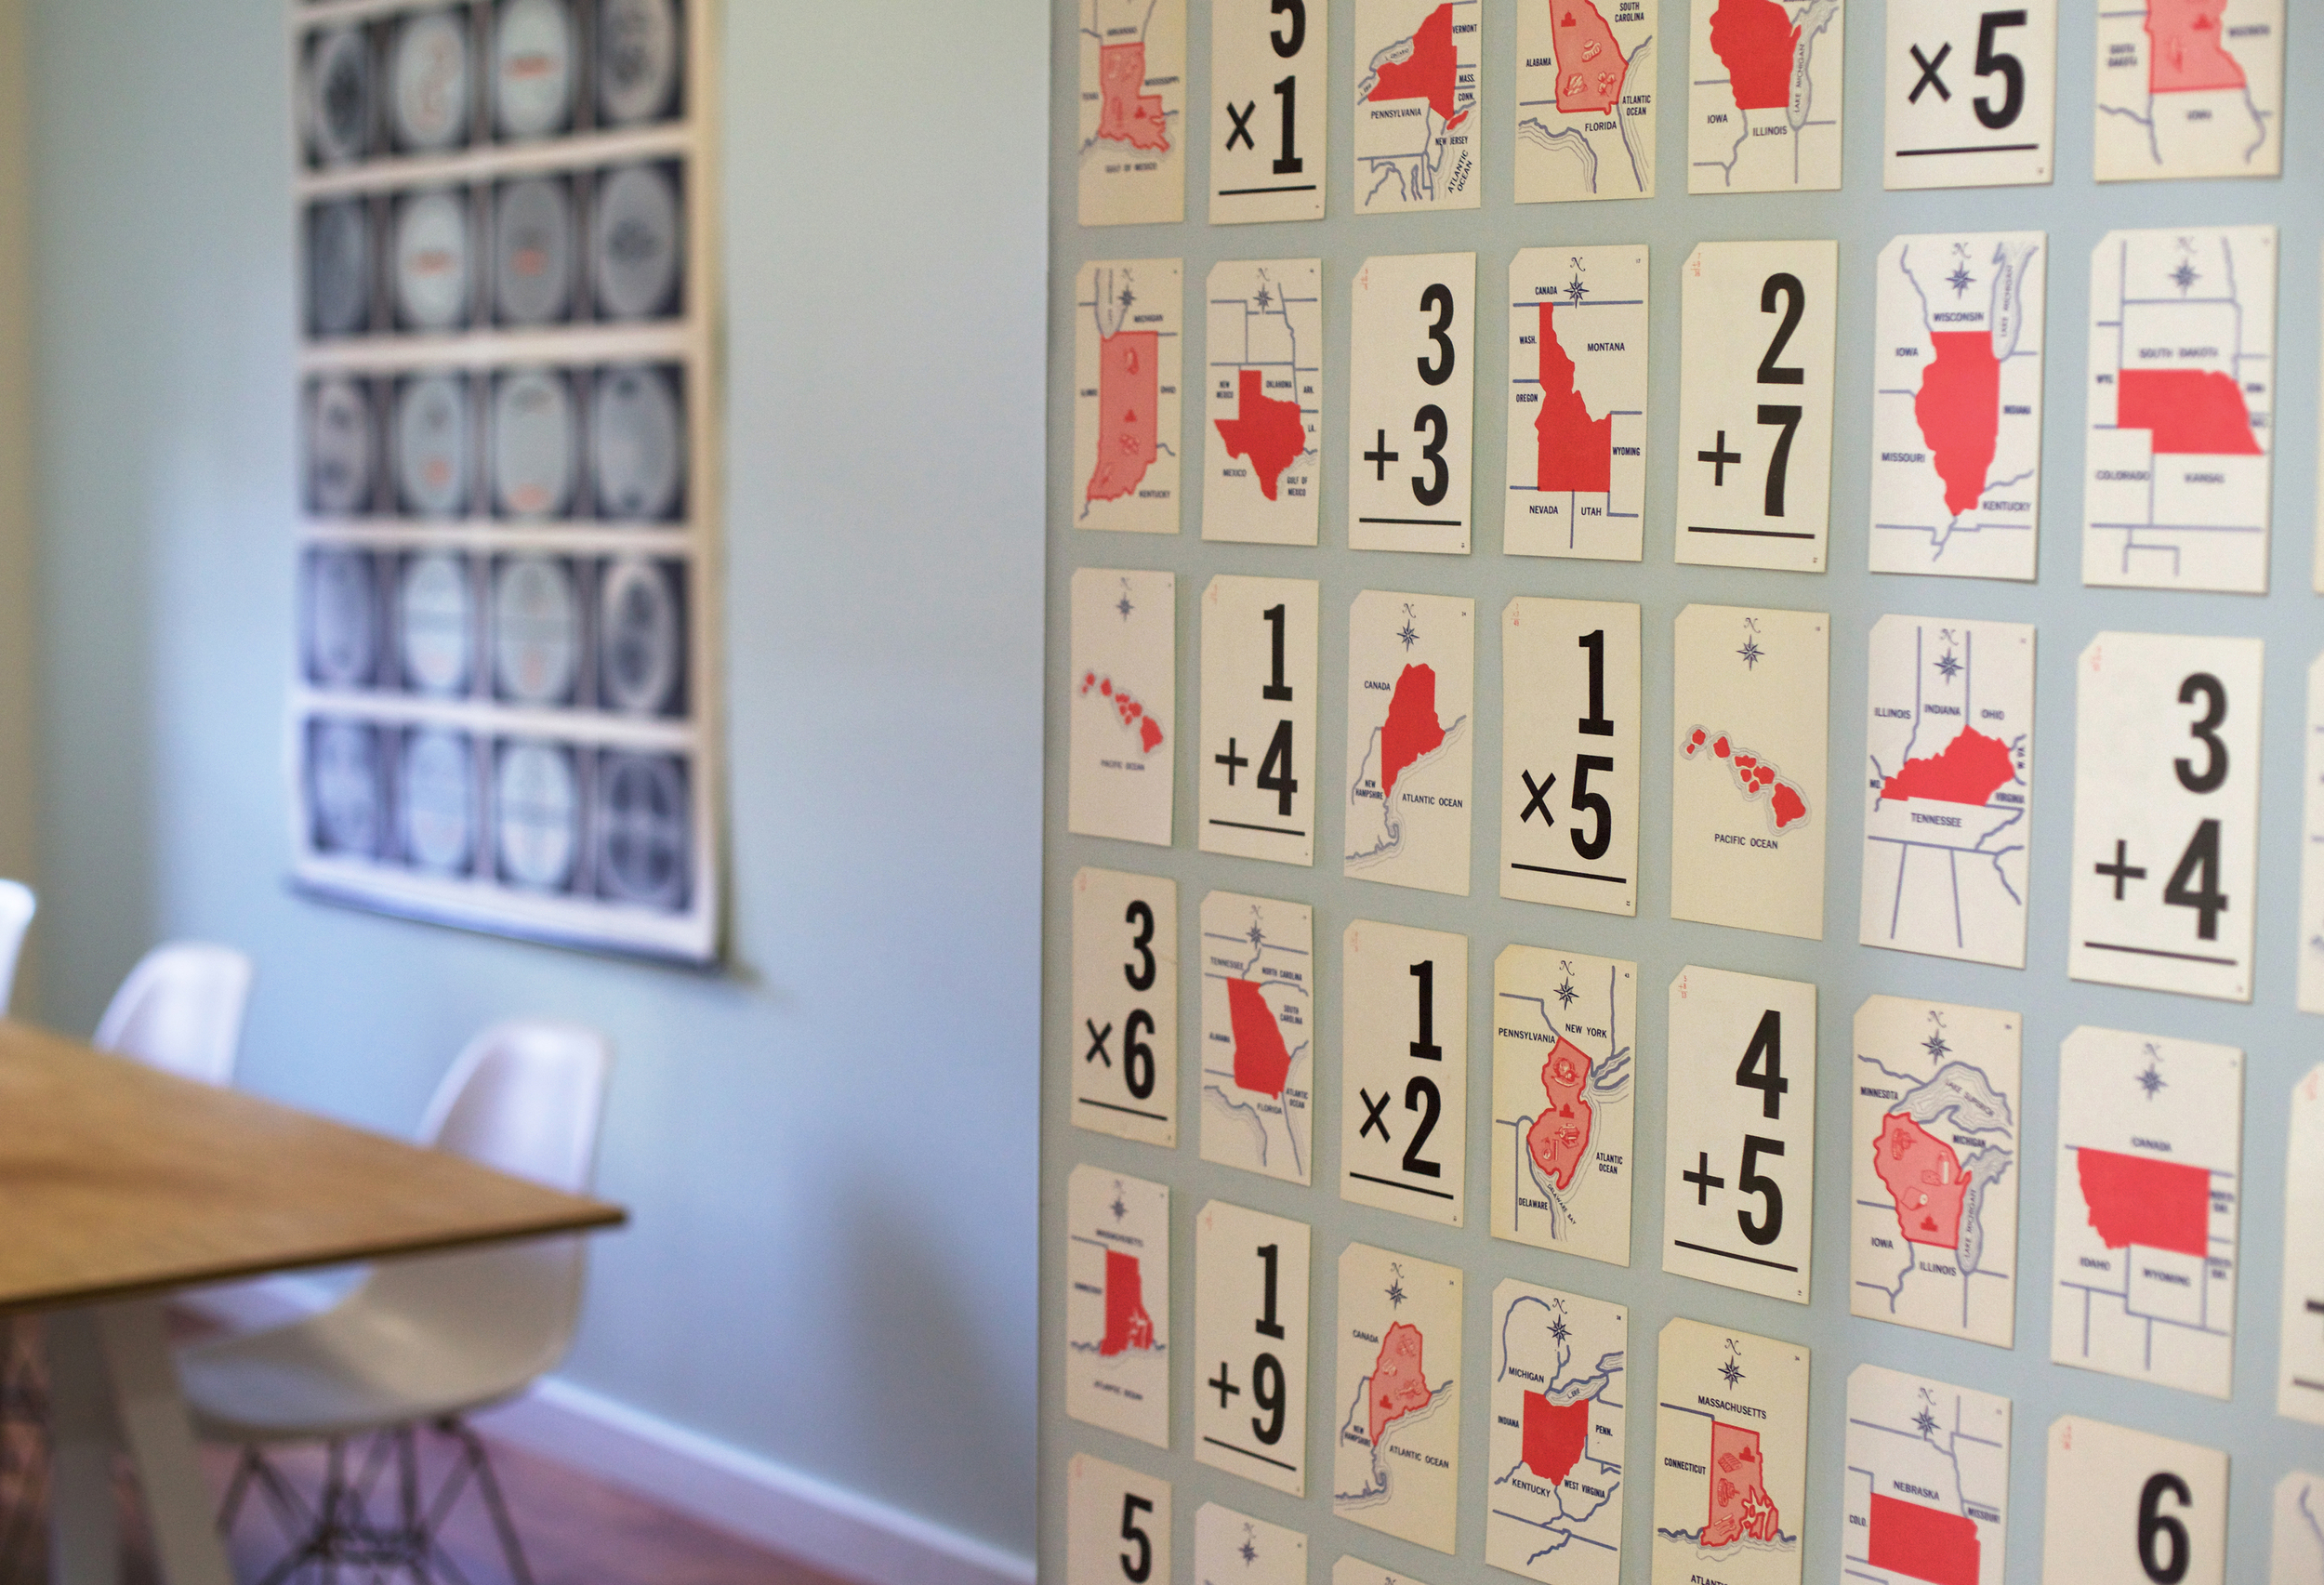 zmaic-one-month-interior-design-conference-room-flash-card-wall-art-feature.jpg